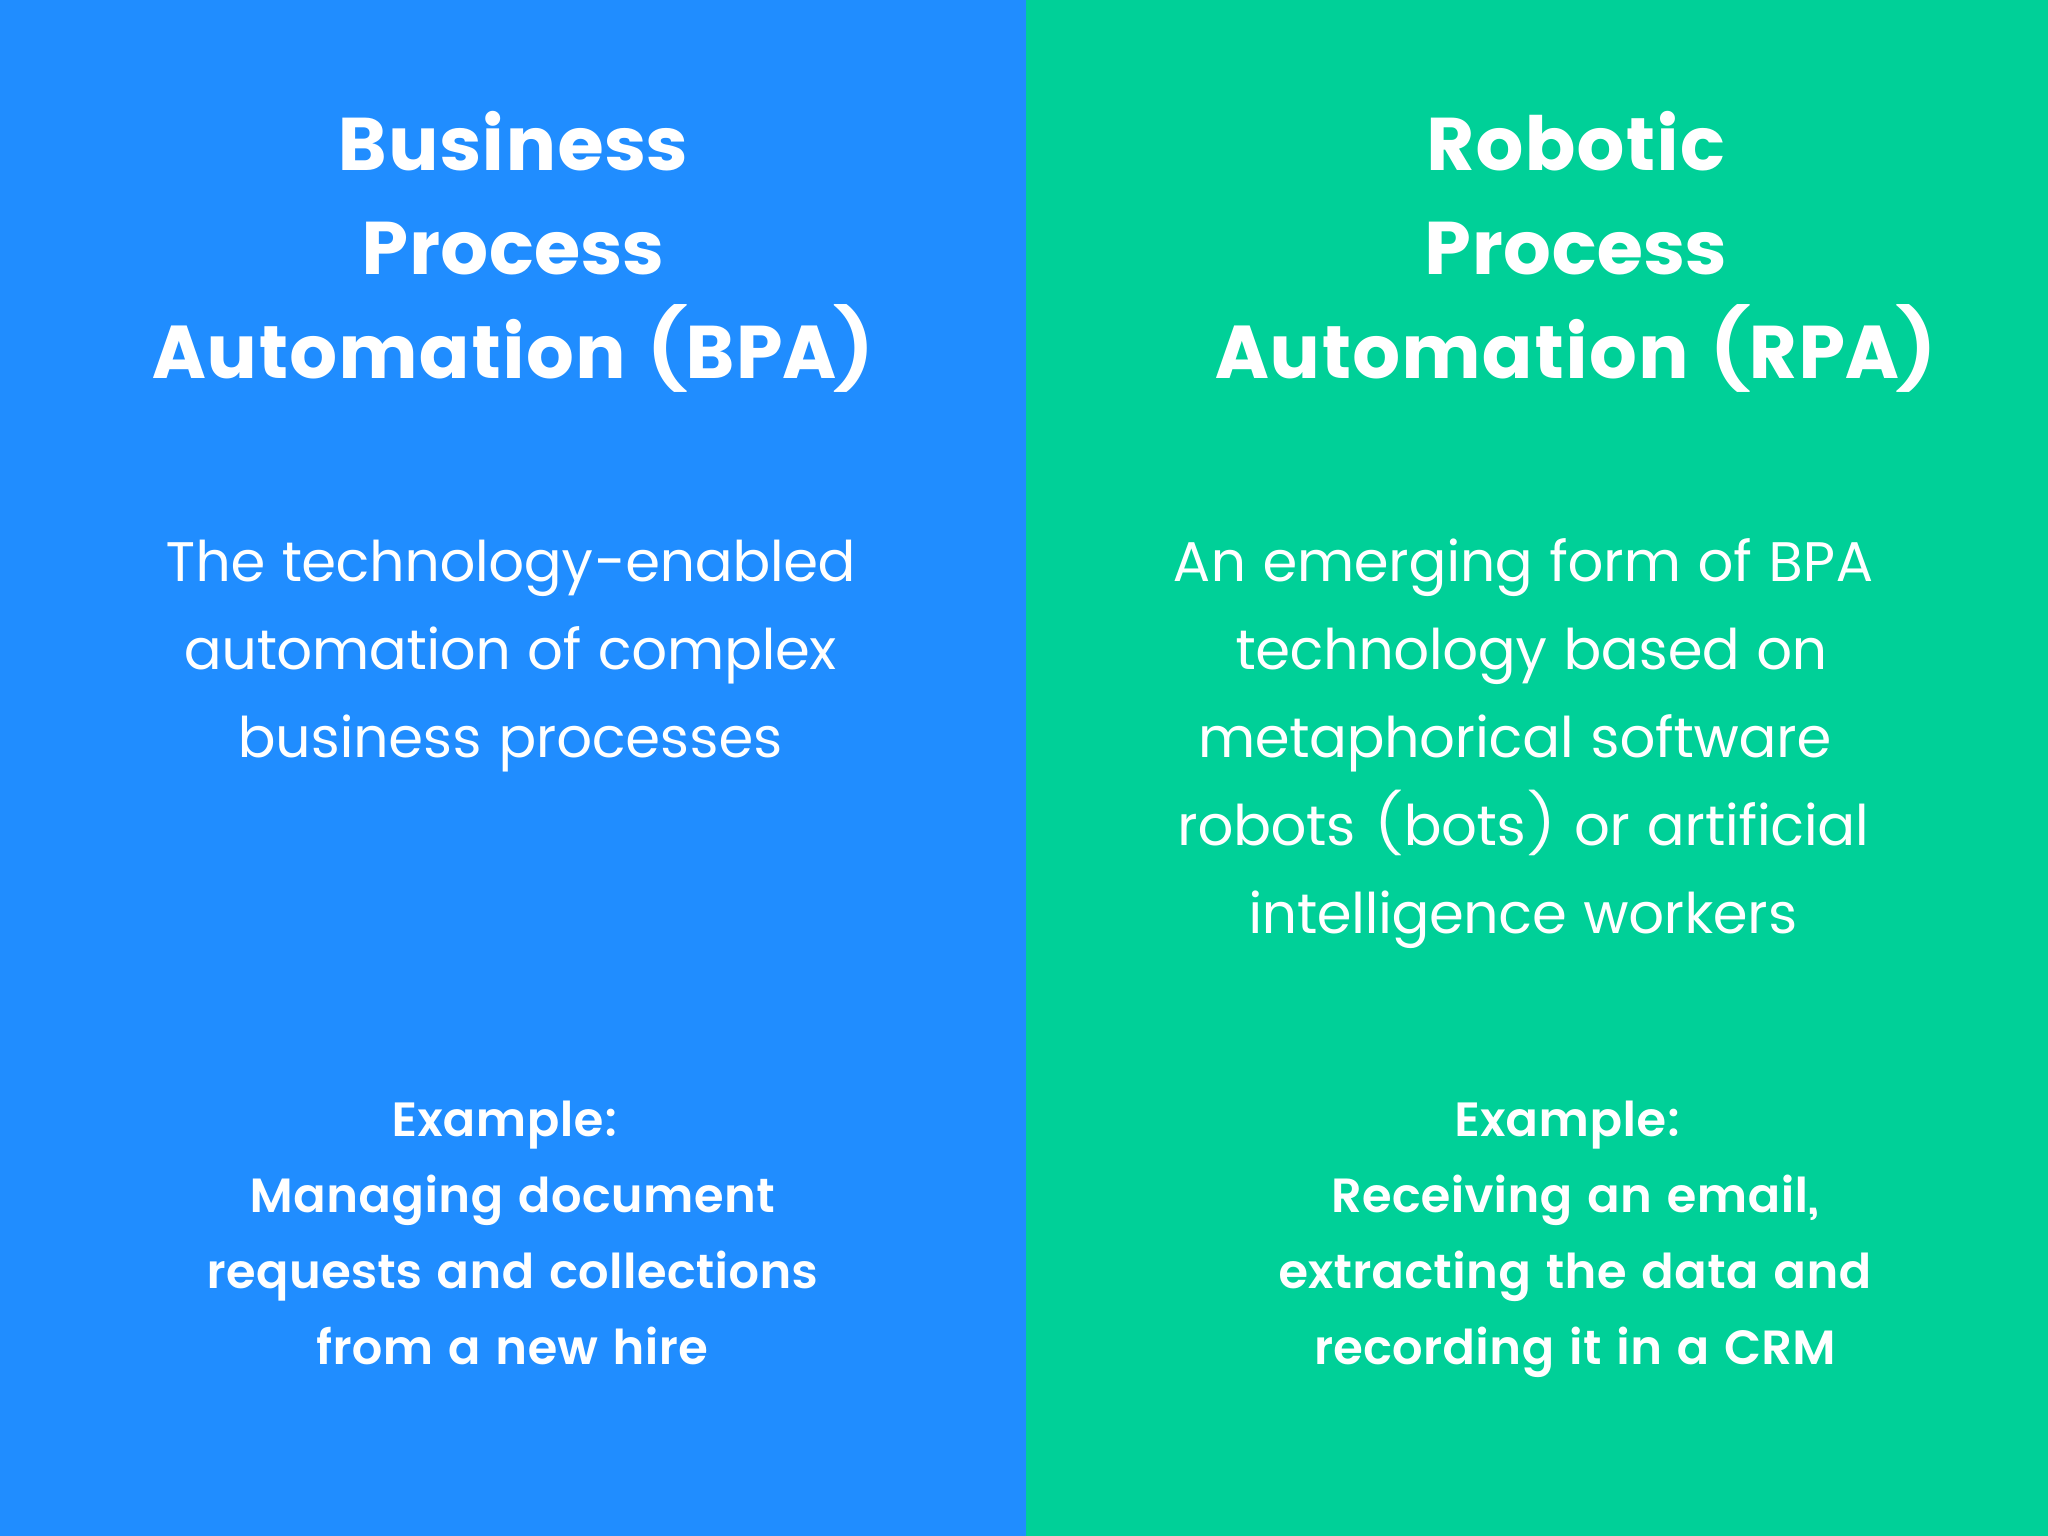 business process automation vs robotic process automation